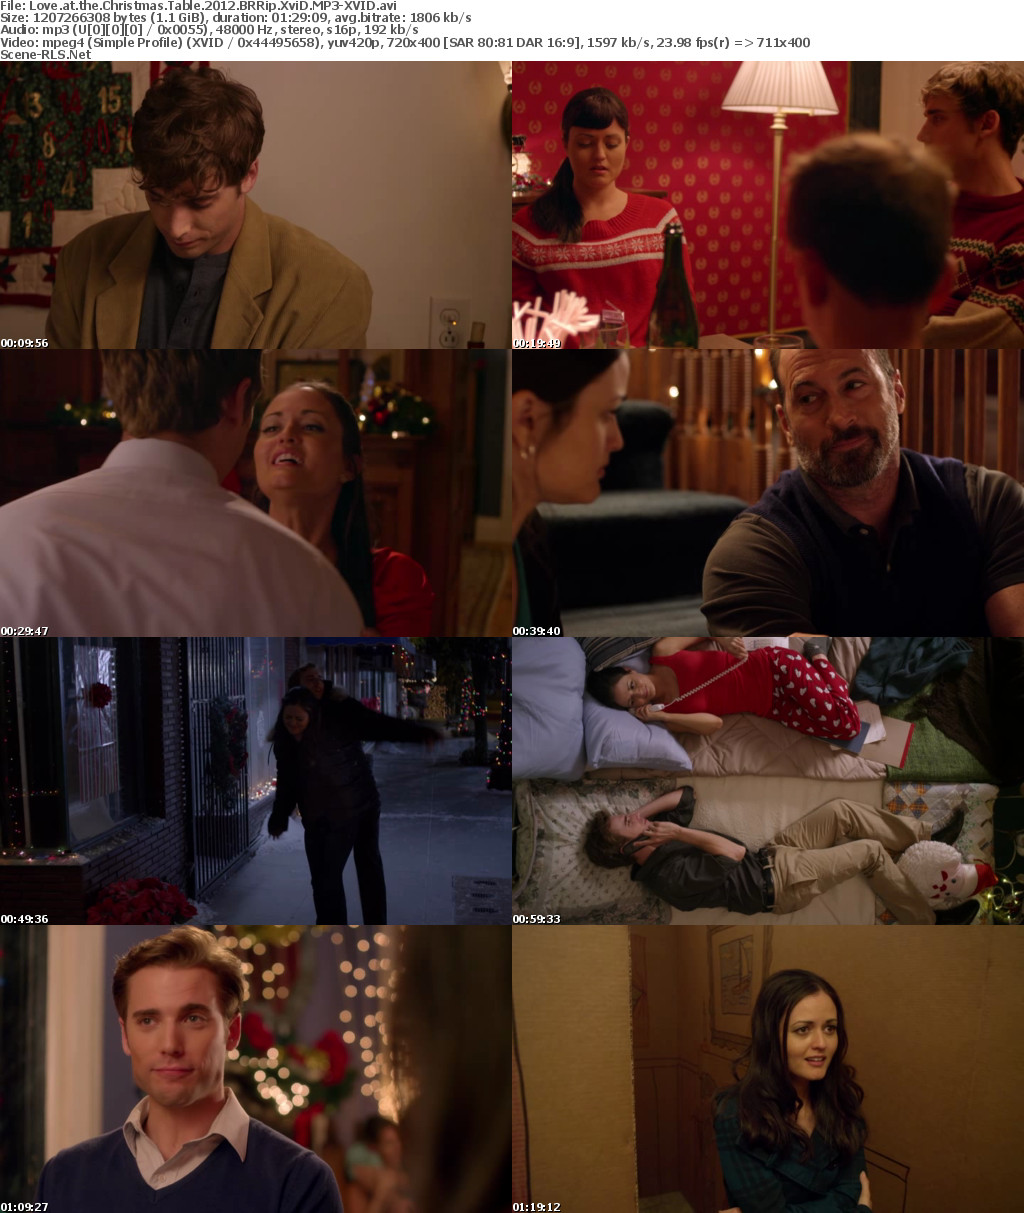 Love At The Christmas Table.Love At The Christmas Table 2012 Brrip Xvid Mp3 Xvid Scene